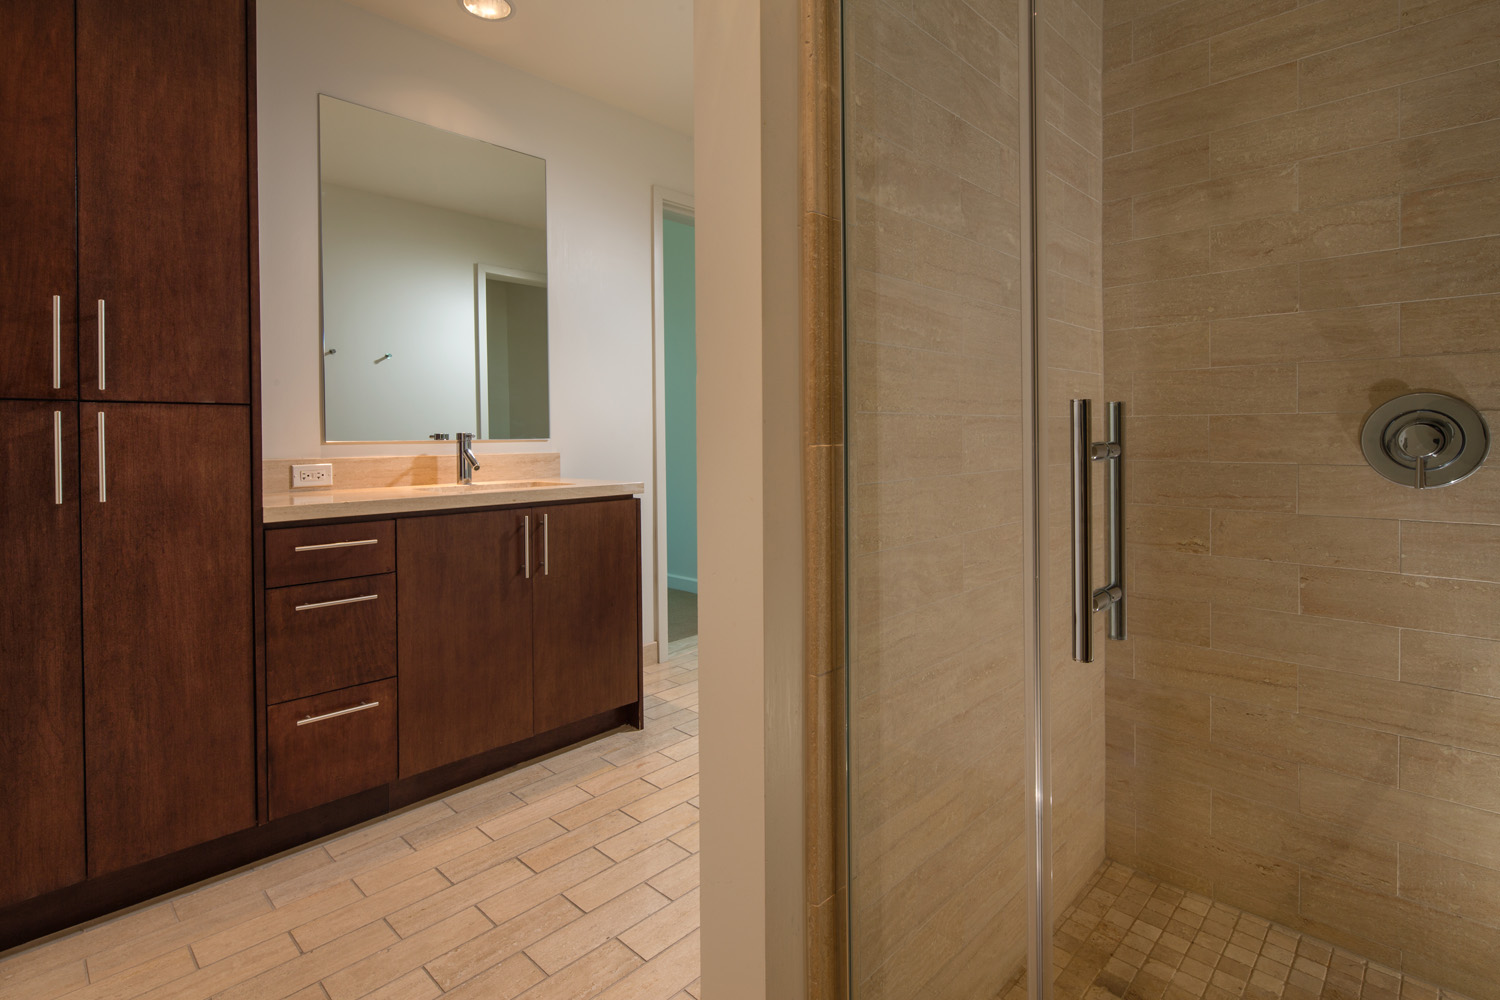 Watermarke Tower Apartments 2 bedroom 2 bath interior view of bathroom with shower and sink